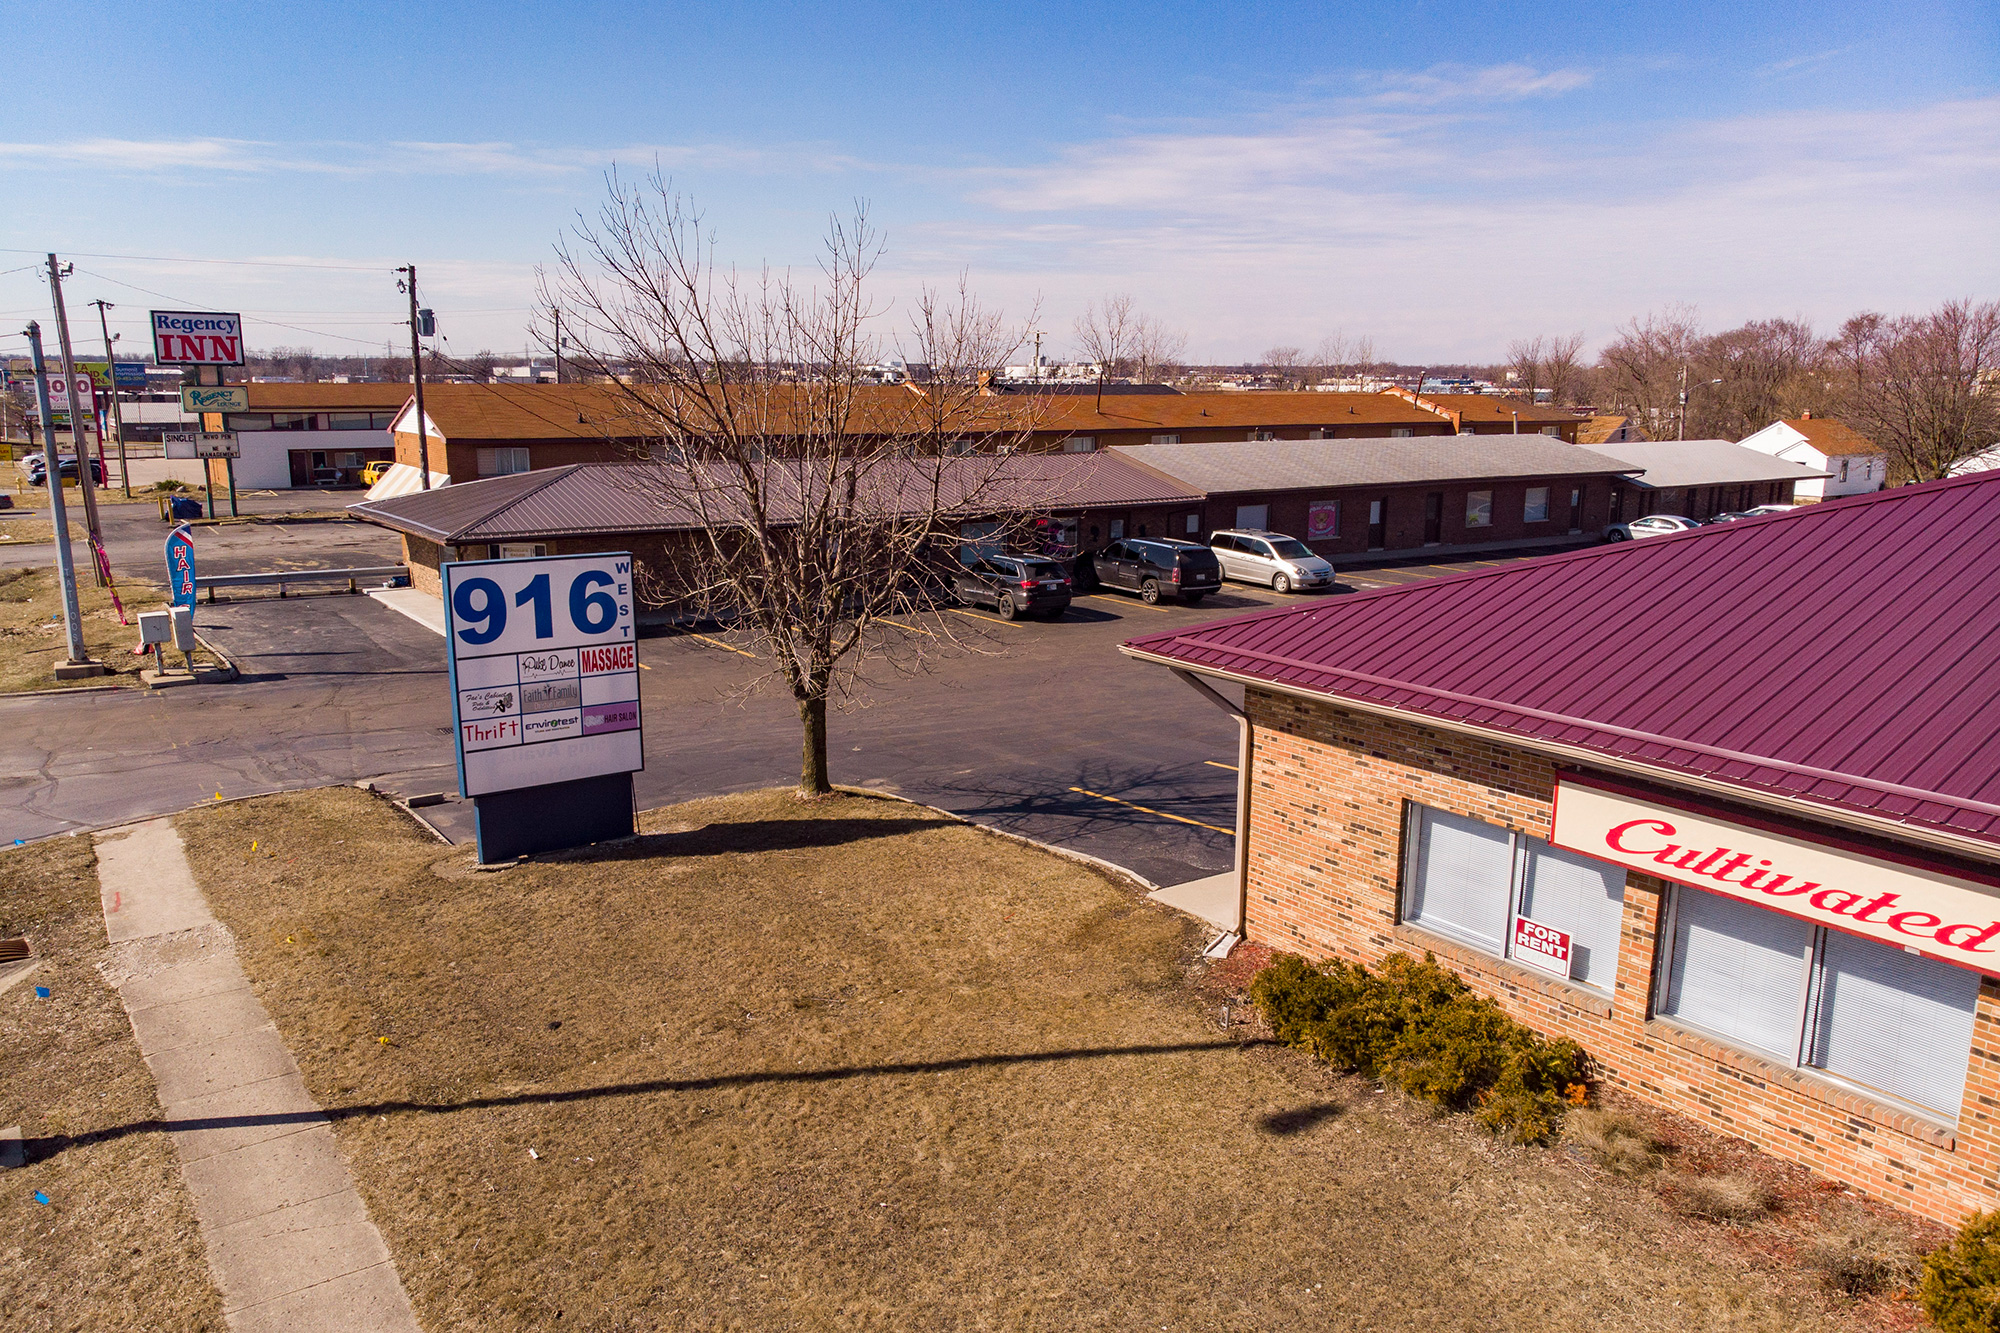 Two brick, 1 story, multi-tenant office/retail buildings for sale on busy Coliseum Boulevard